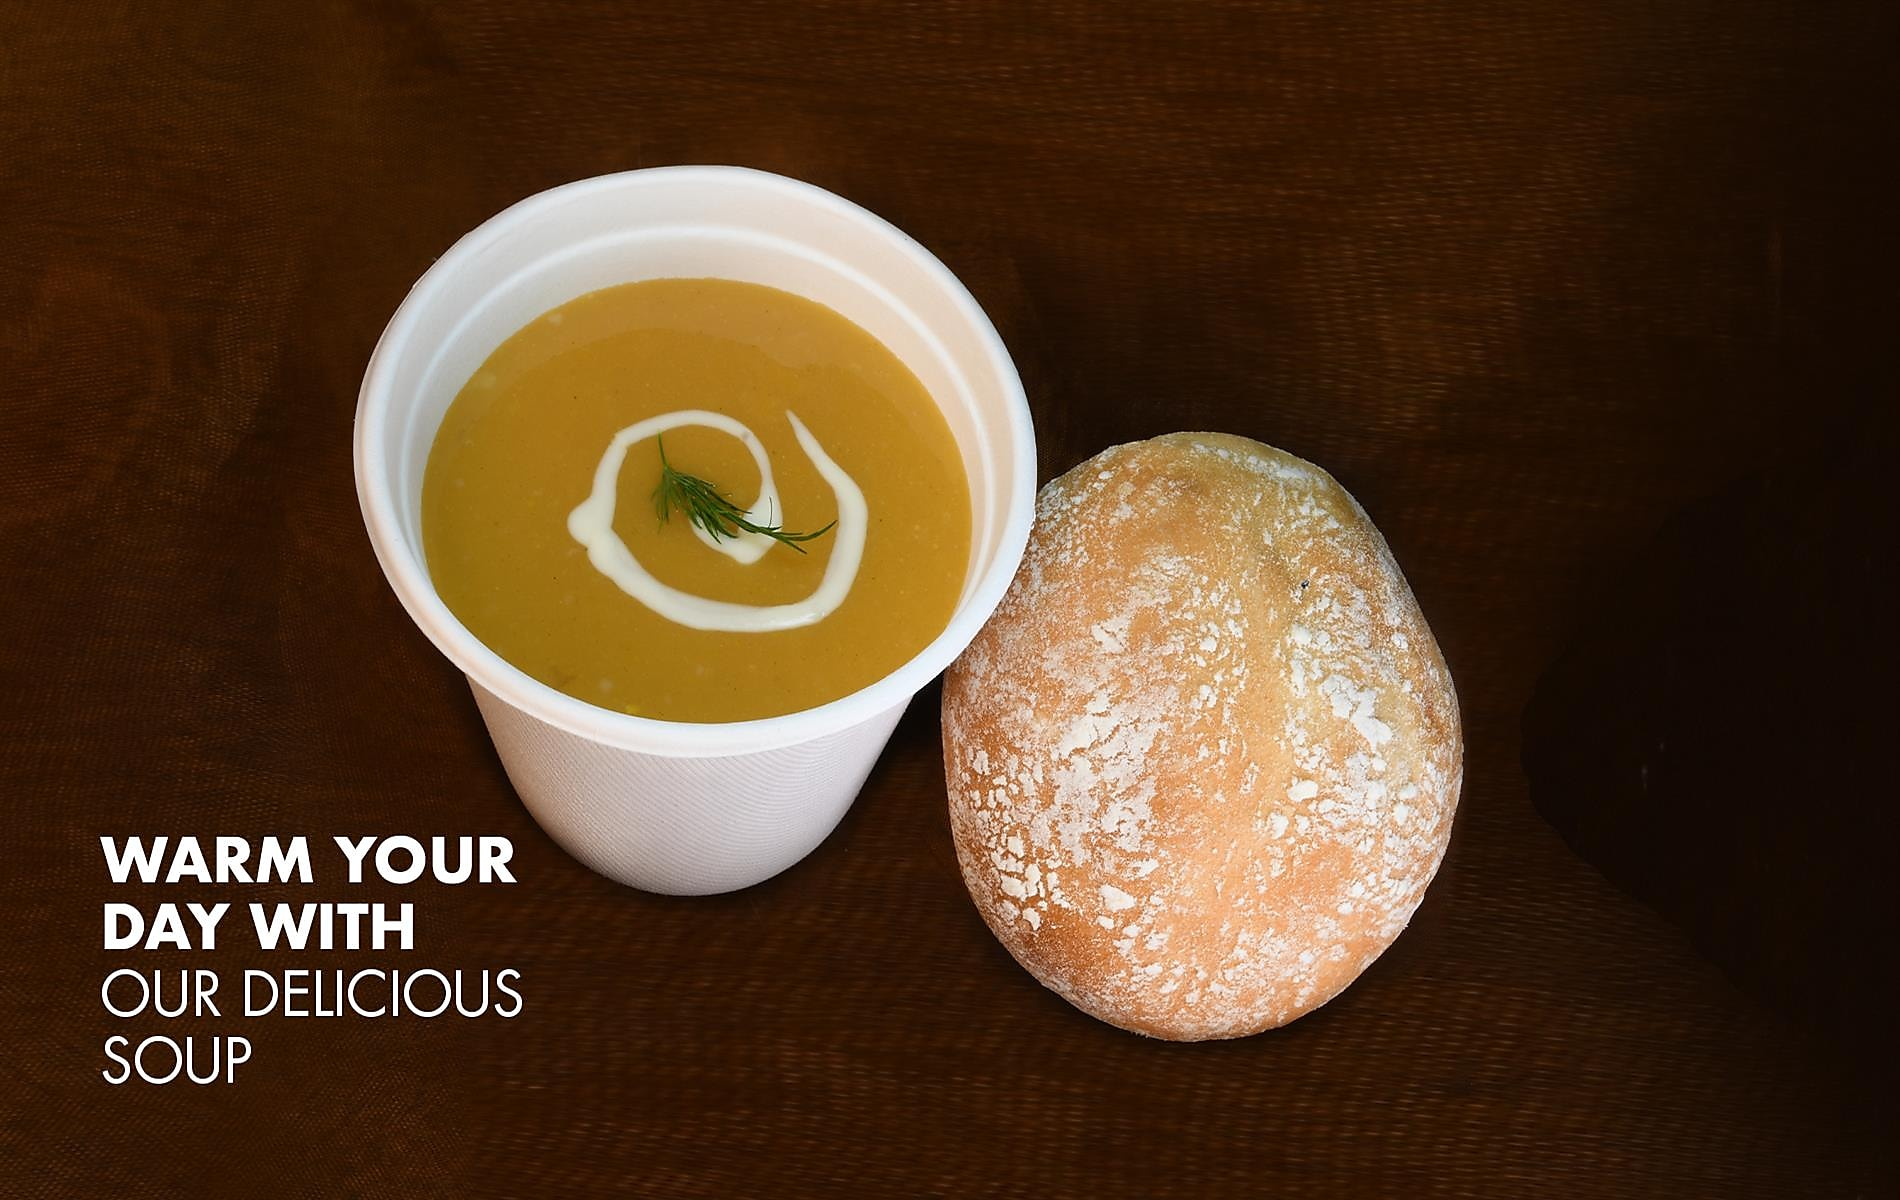 Warm Your Day With Our Delicious Soup